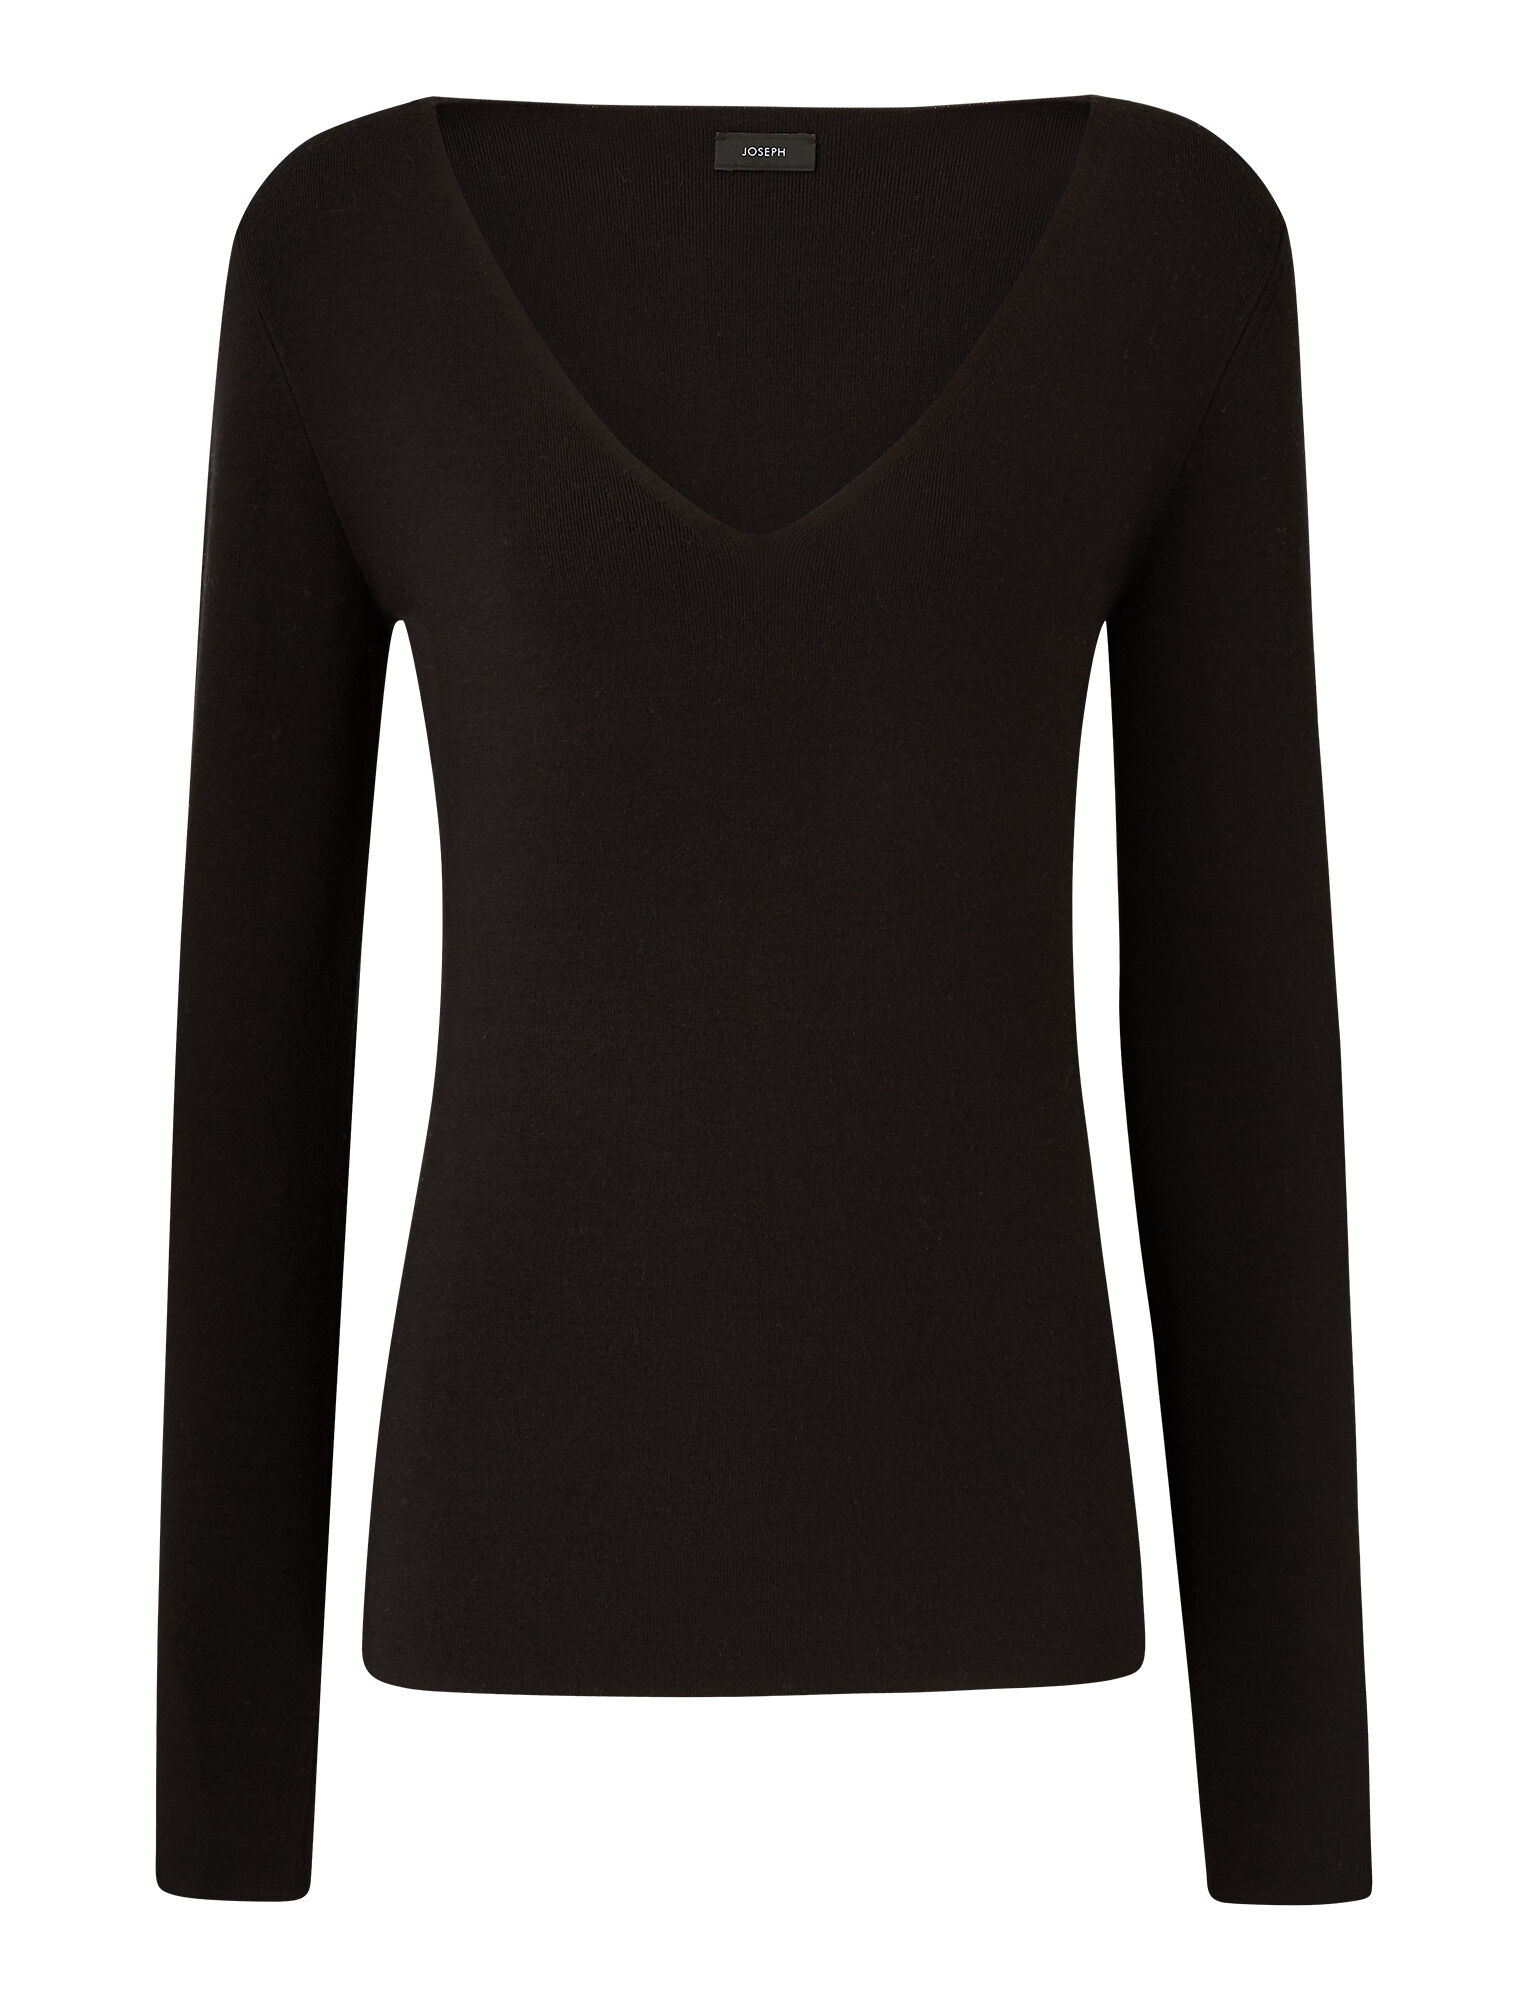 Joseph, V Neck Silk Stretch Knit, in BLACK